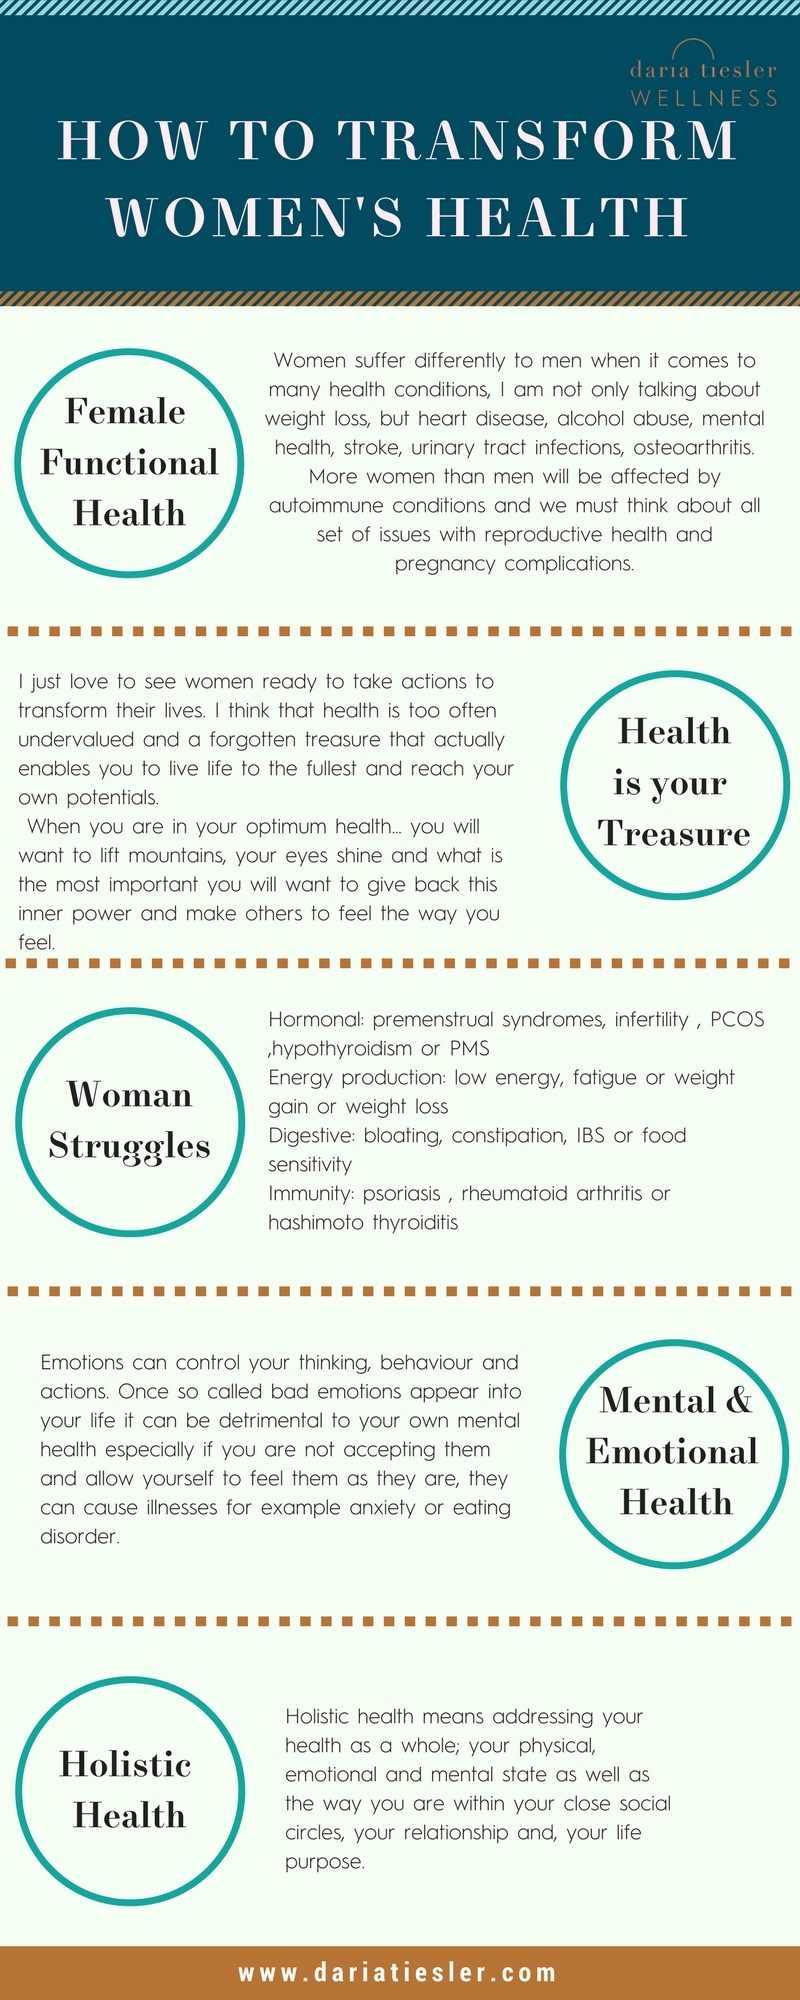 how-to-trasnform-womens-health.jpg